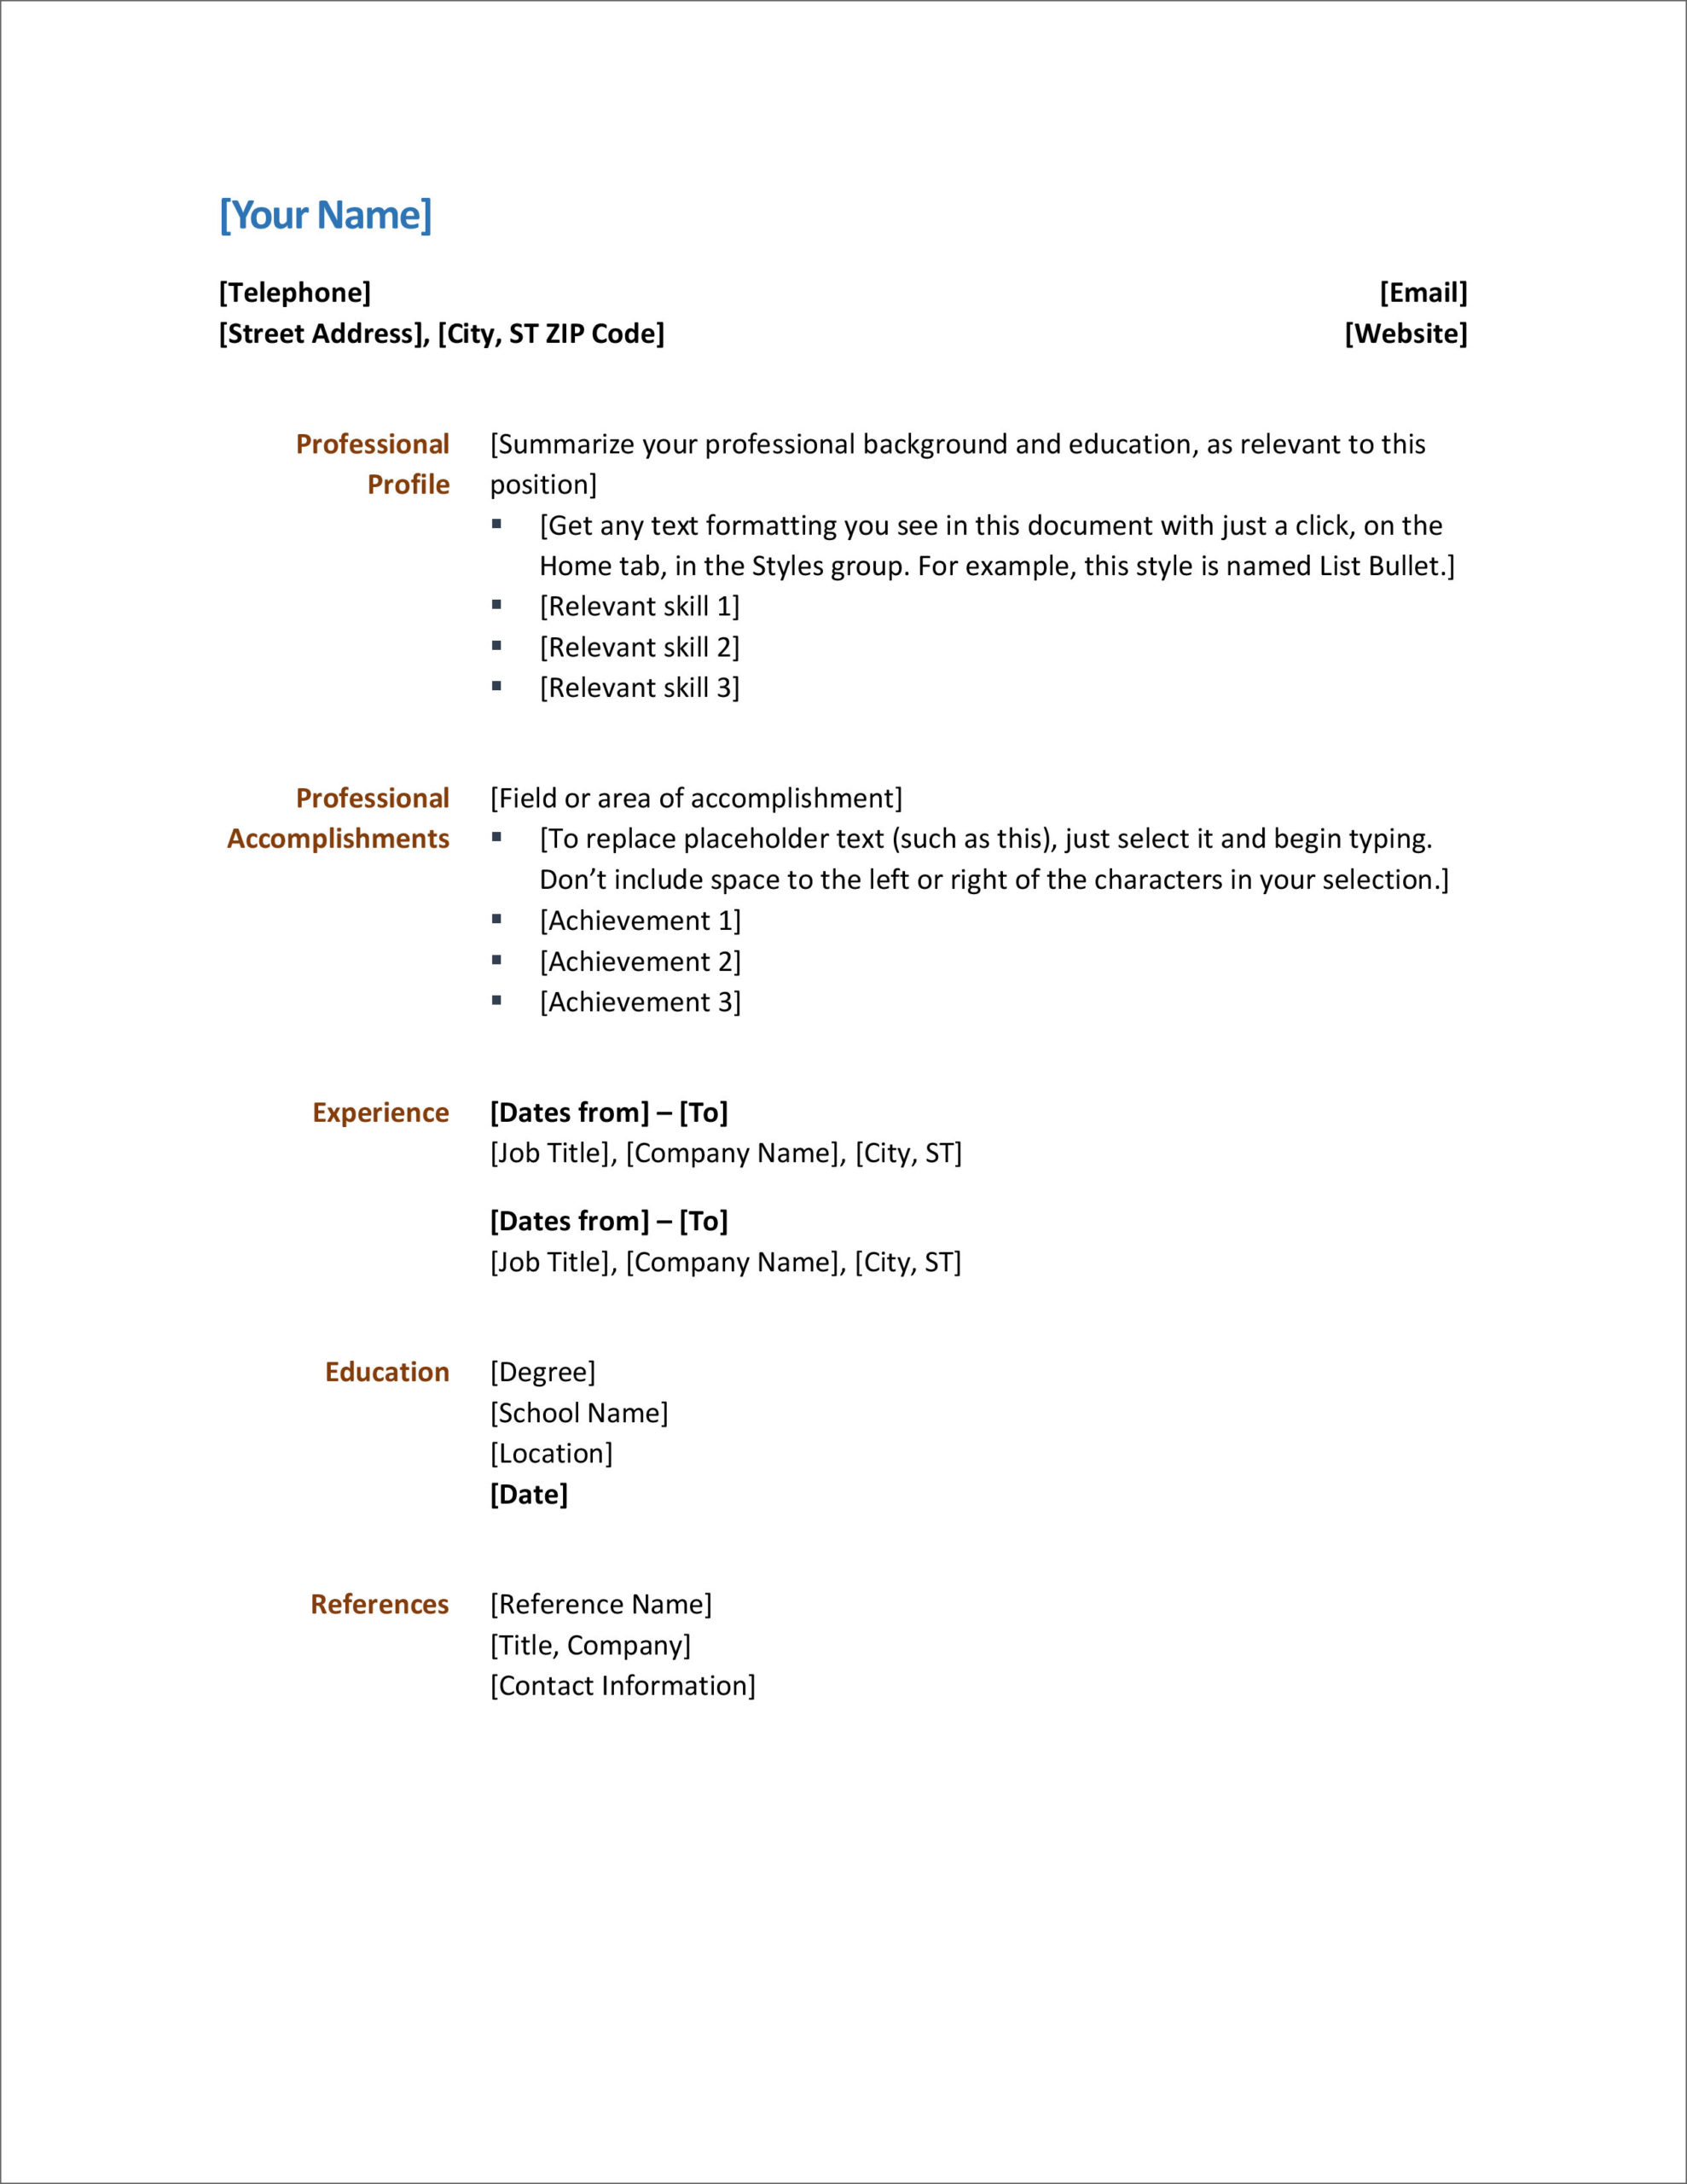 resume microsoft cv template form sample for new graduates another name foundation typing Resume Typing Up A Resume For A Job